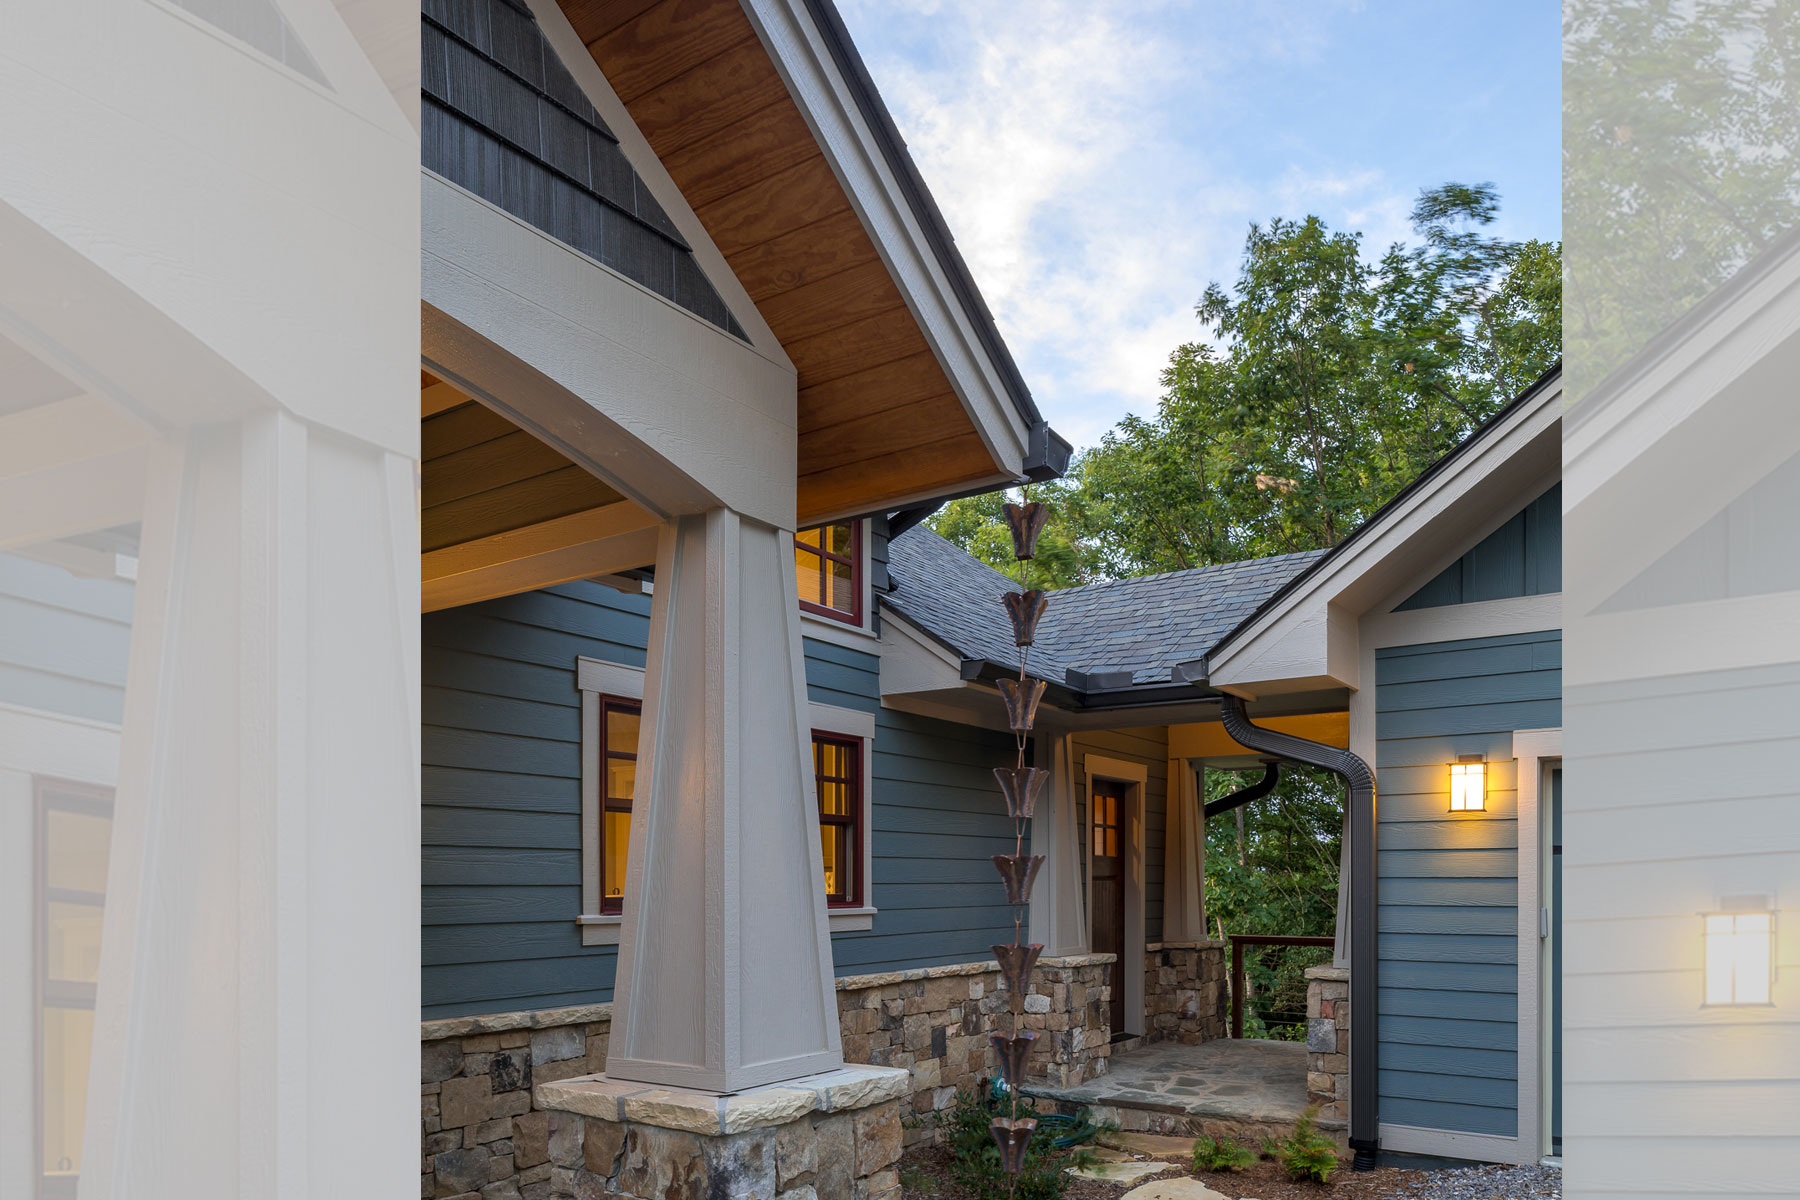 Breezeway from garage to main home in Traditional Mountain Craftsman